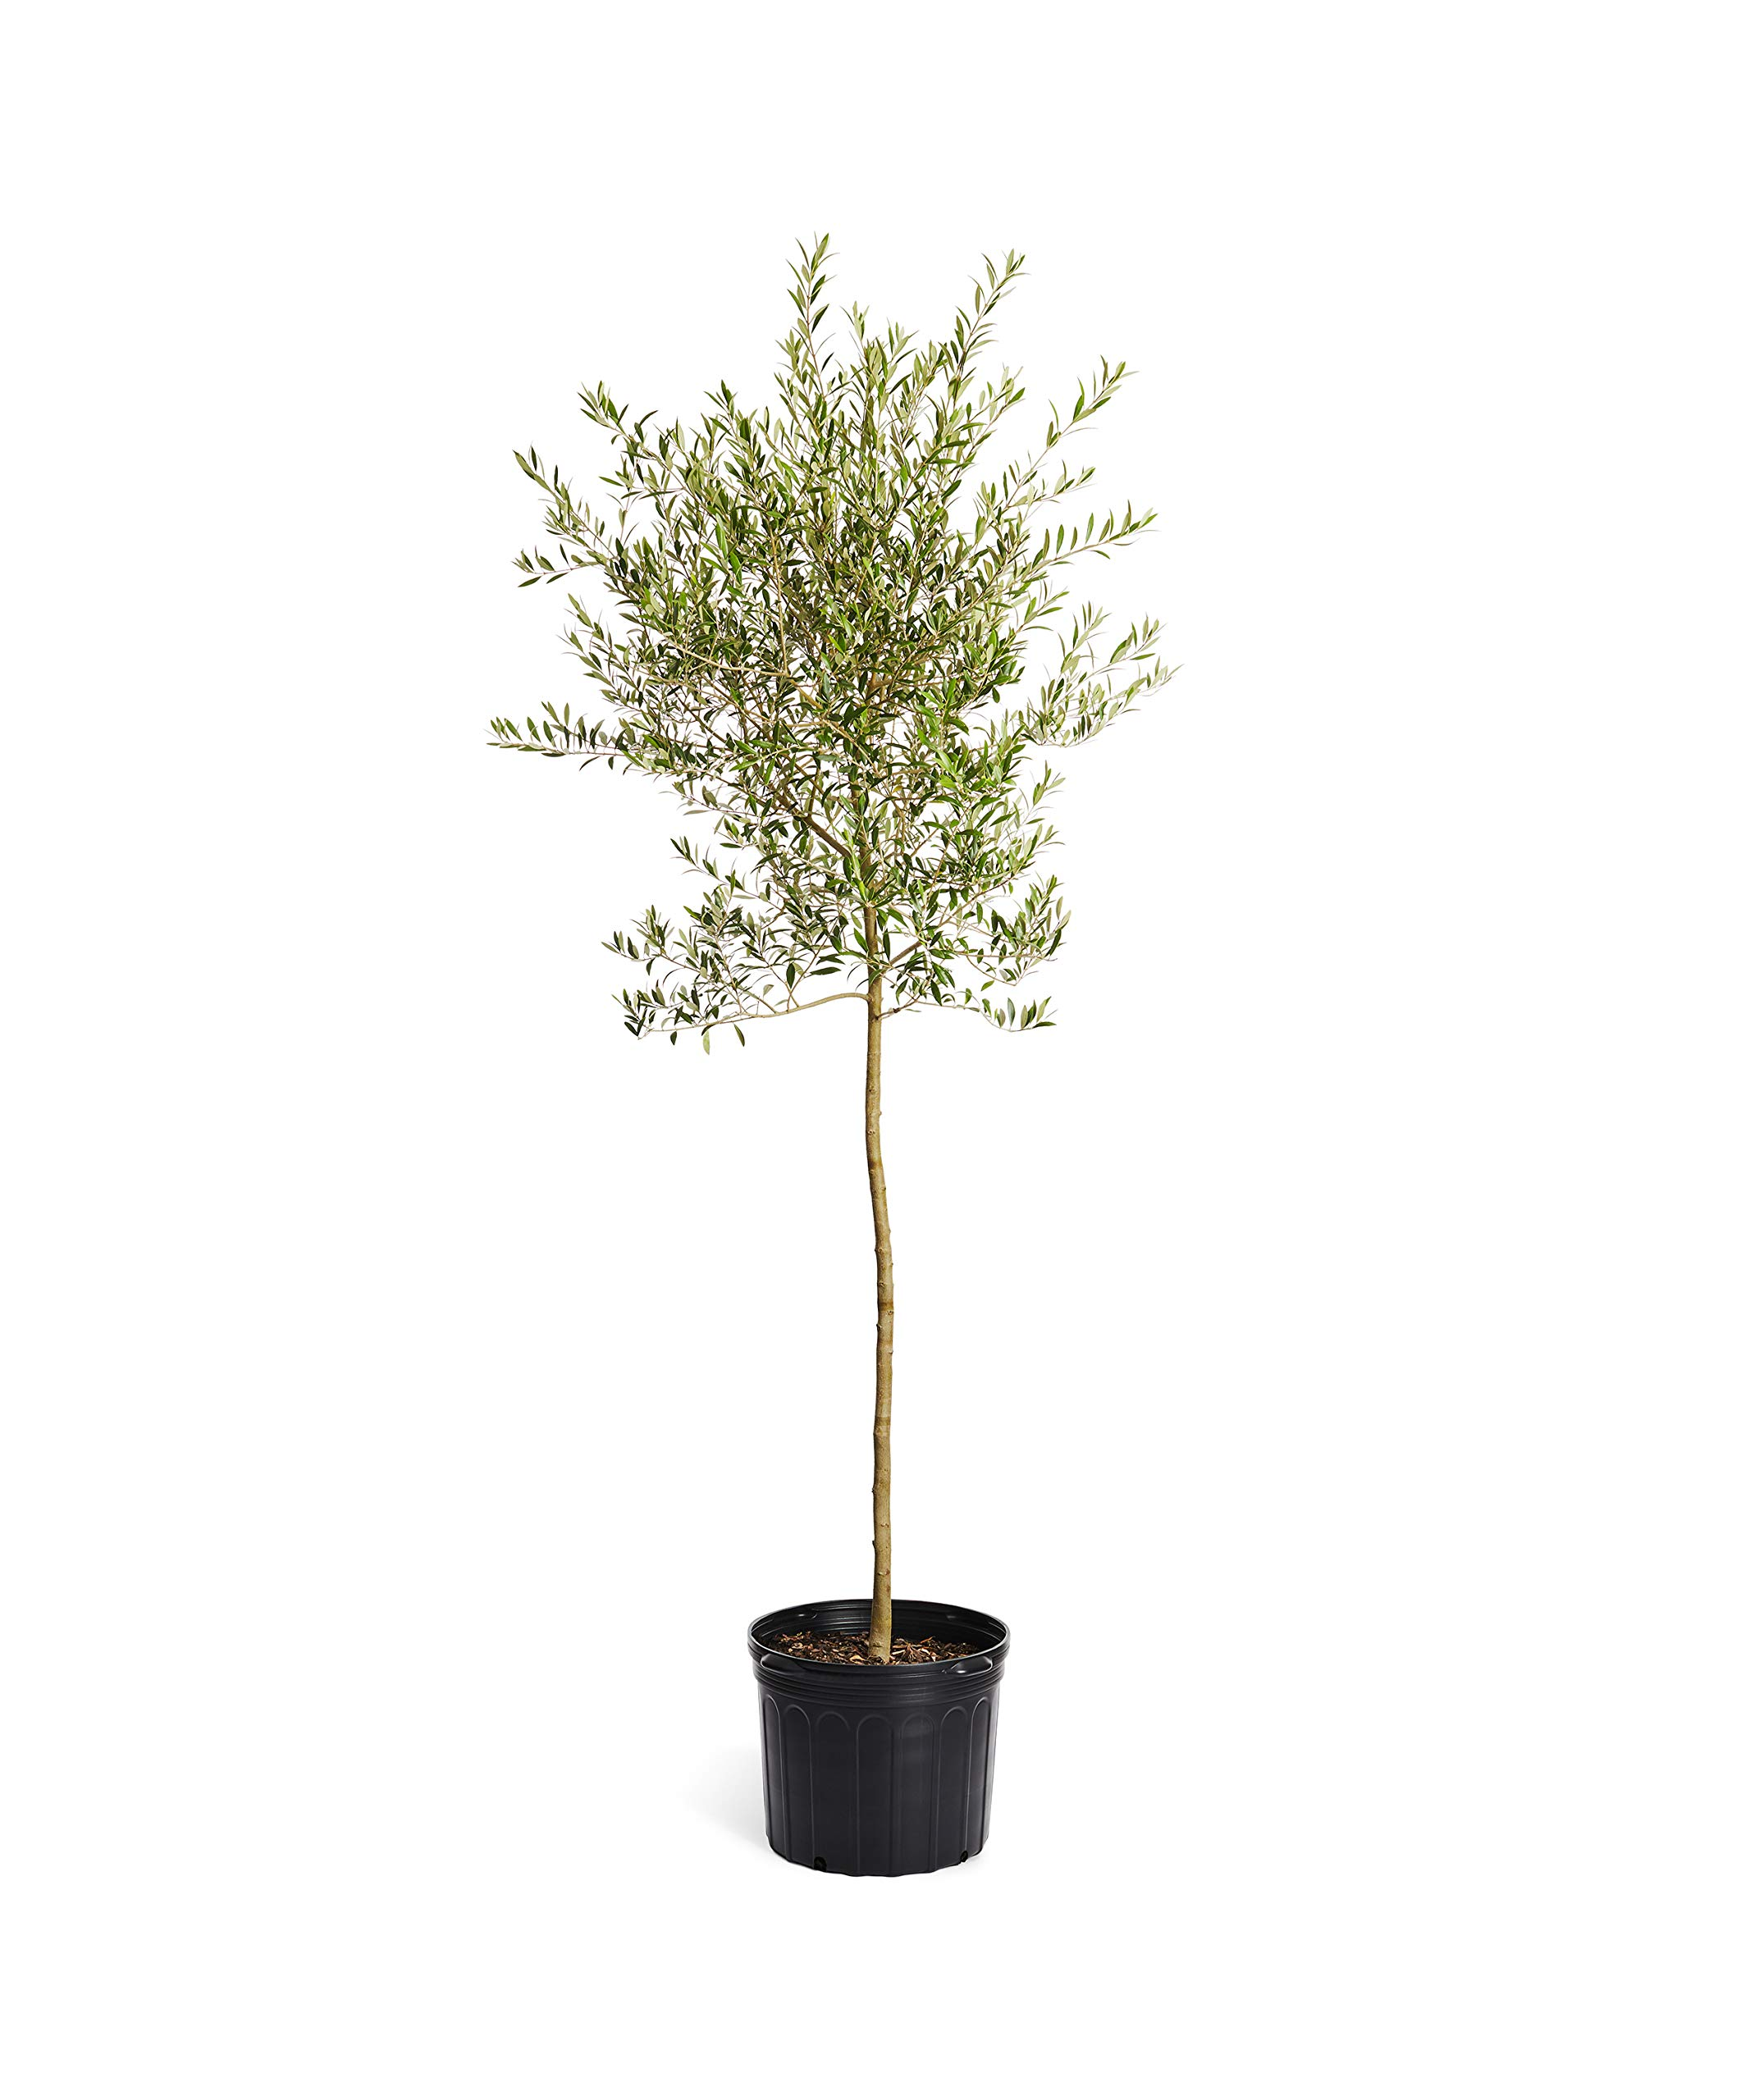 Arbequina Olive Tree 5-6 feet Tall - Get Olives 1st Year with Large Olive Trees - Indoor/Patio Live Olive Trees by Brighter Blooms (Image #1)